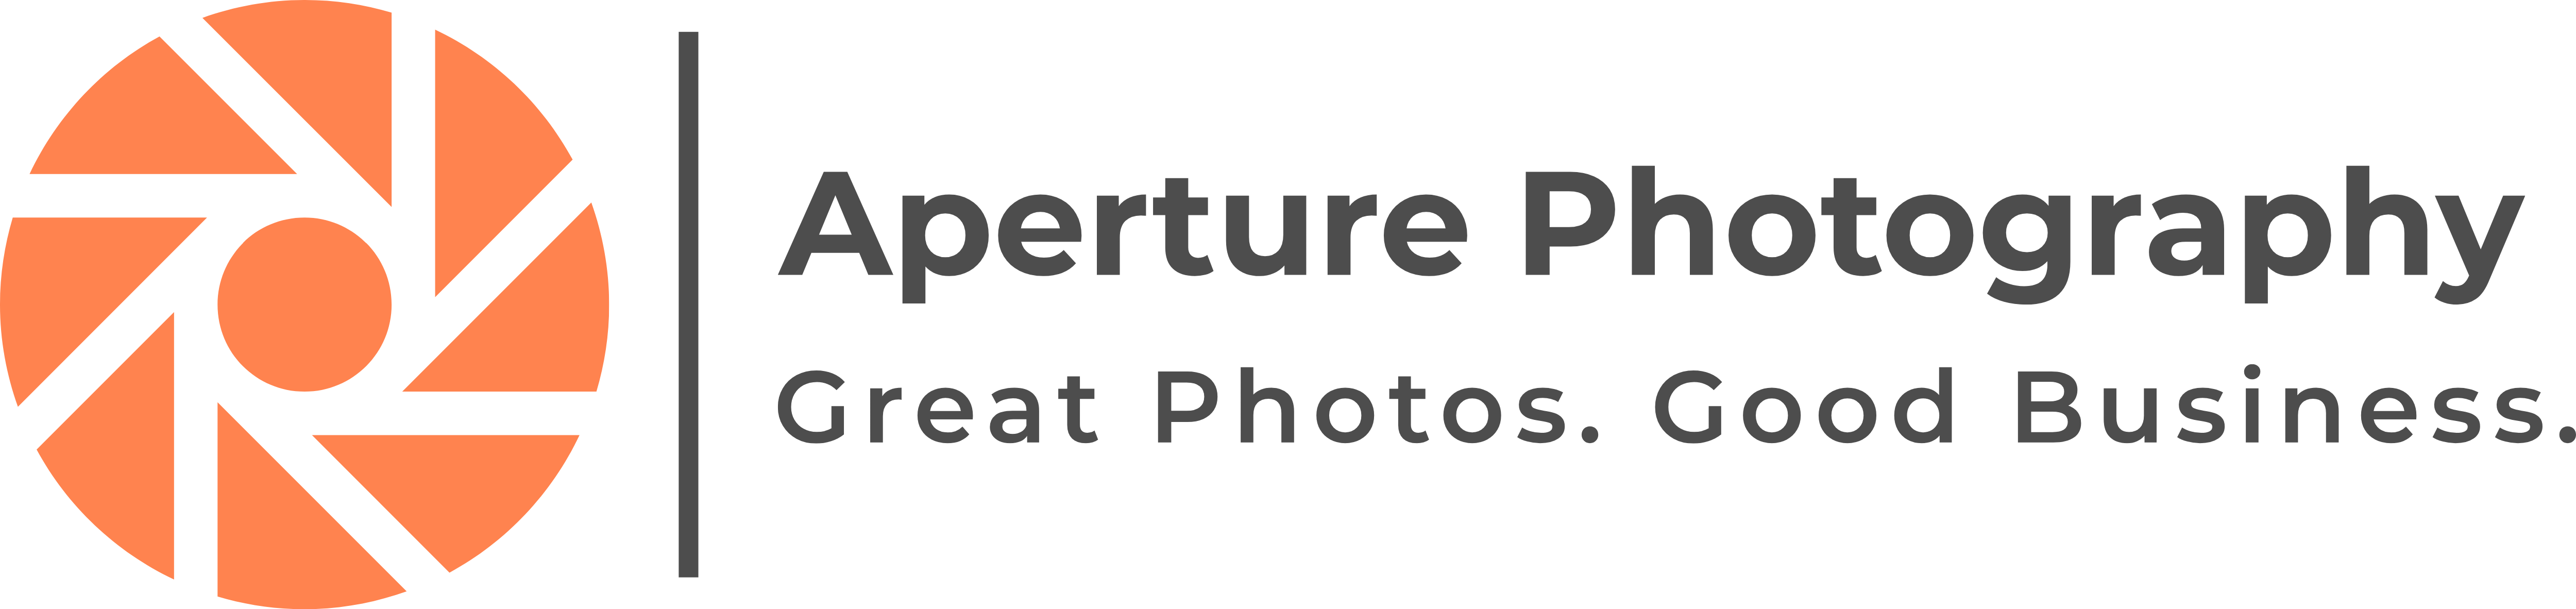 Aperture Photography Services